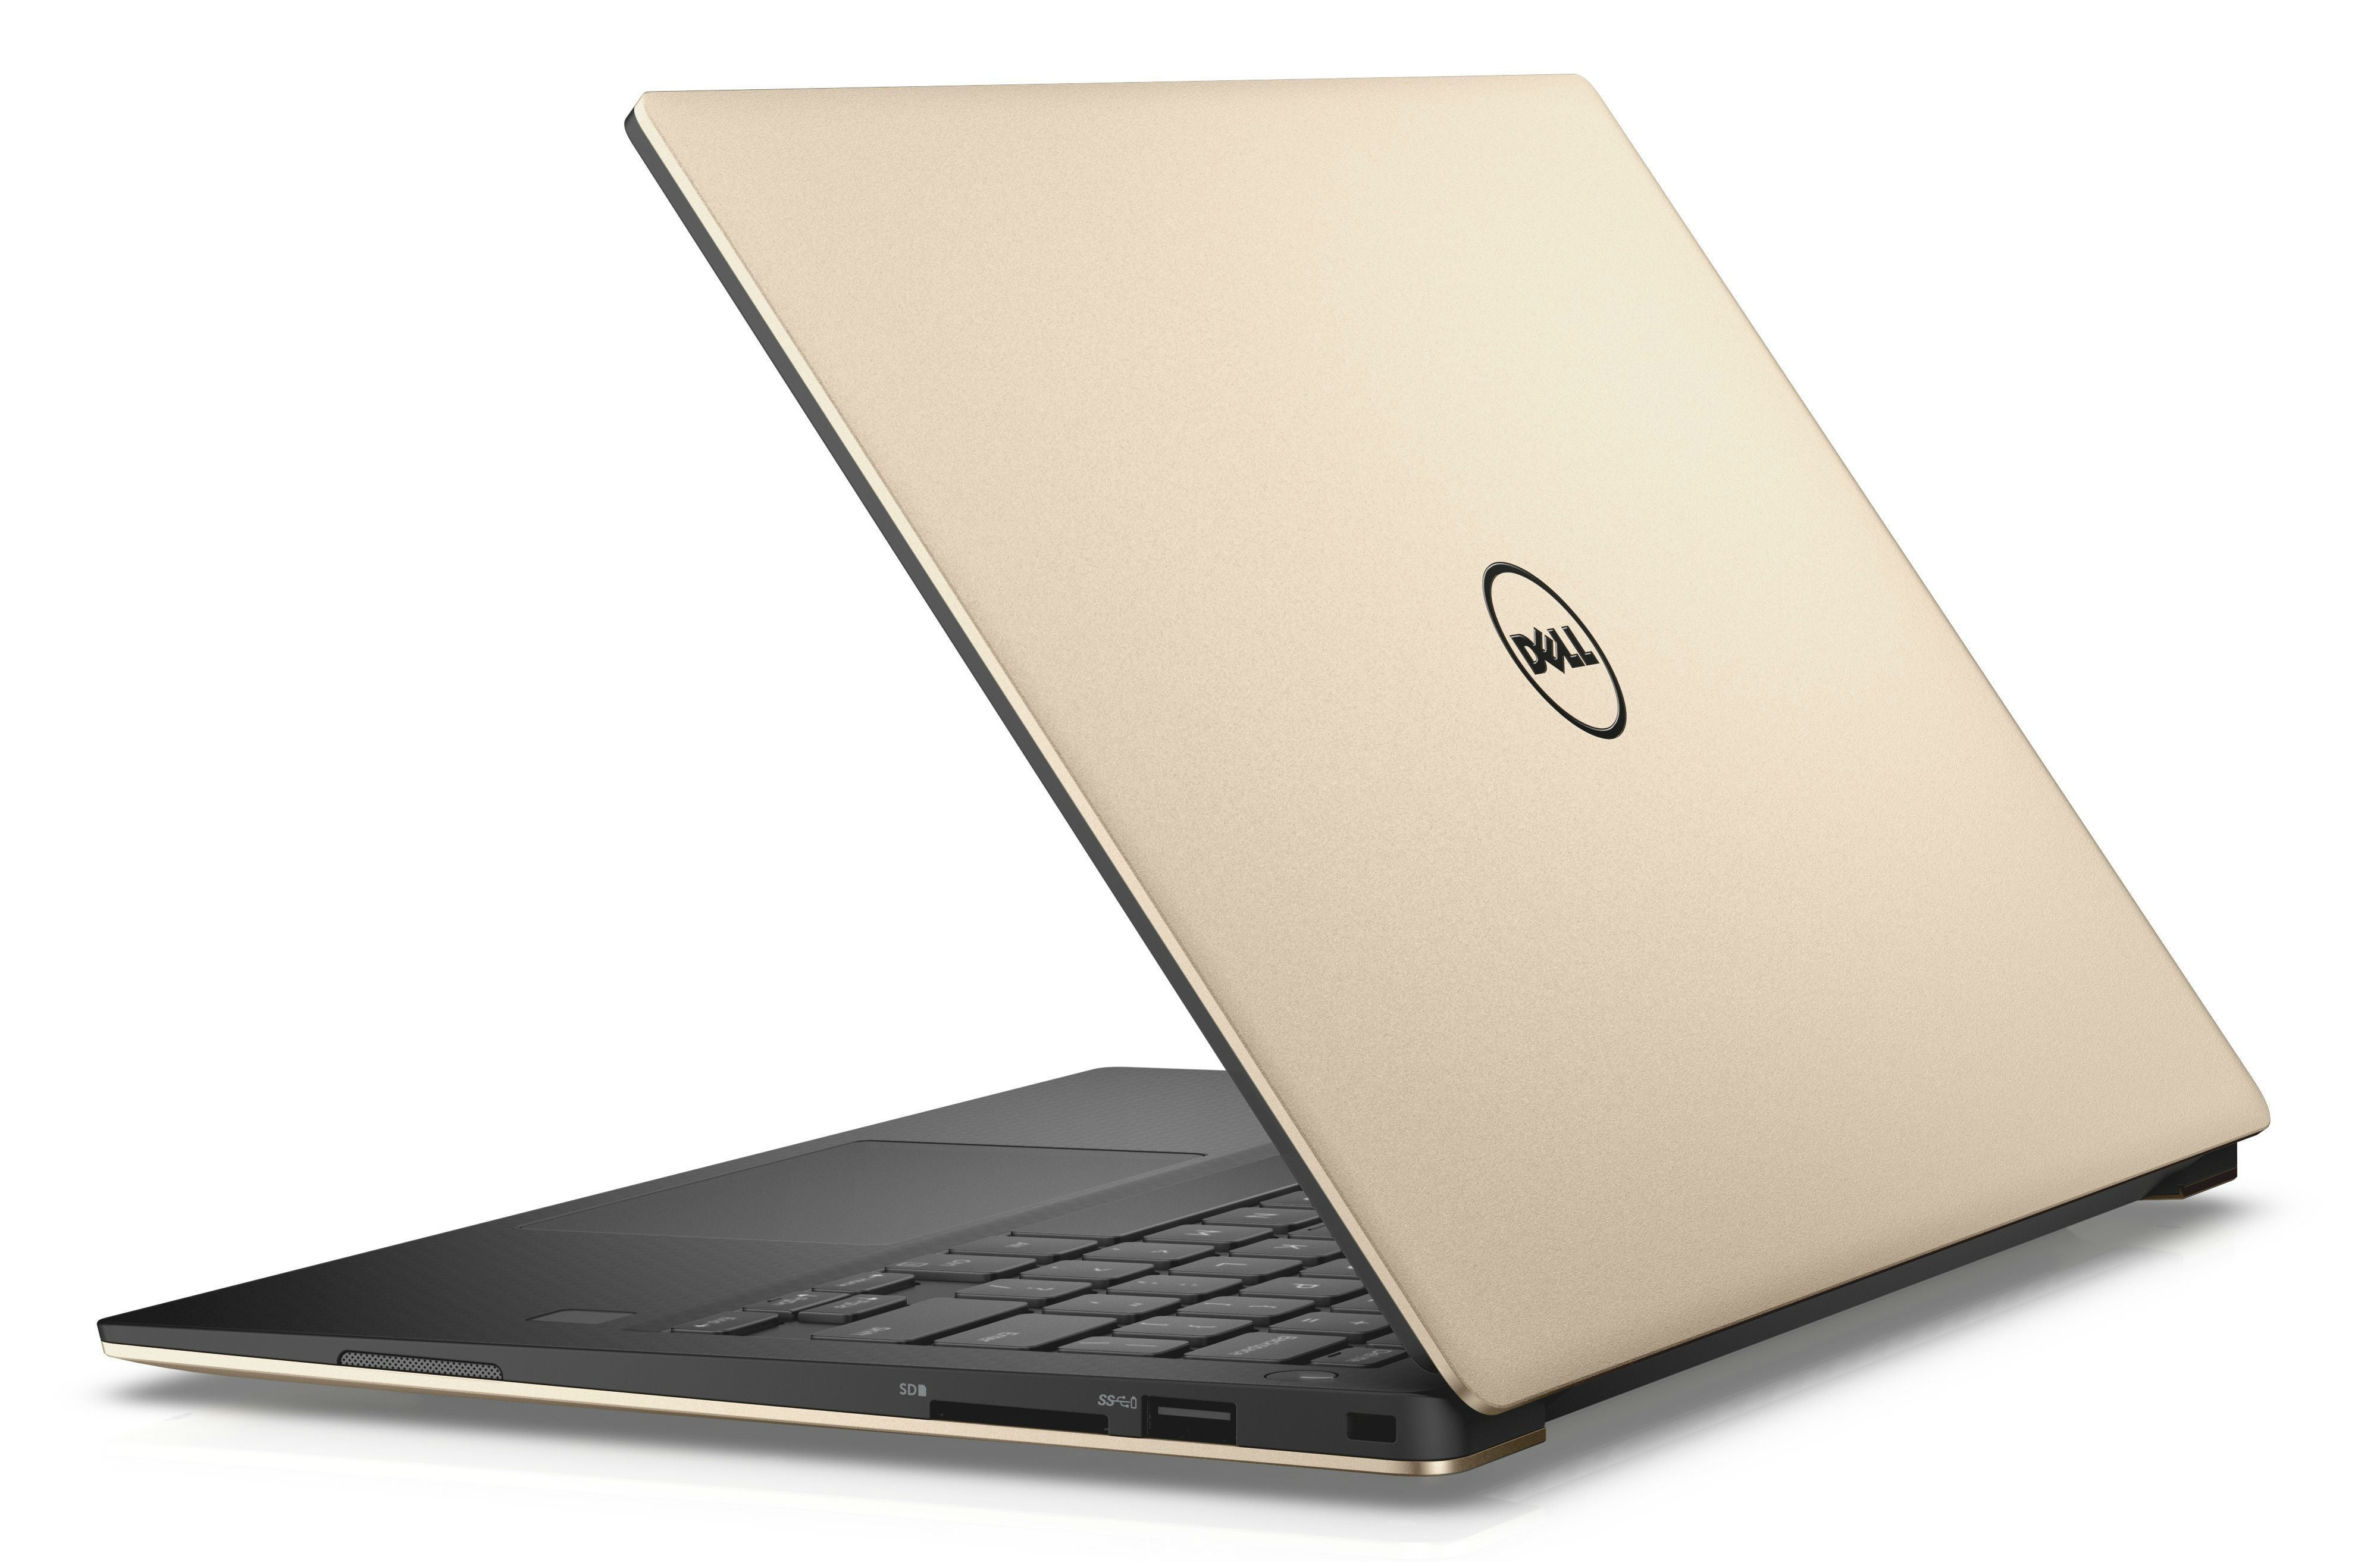 Dell XPS 13 (2017) review: Intel's 8th-gen CPU makes a ...